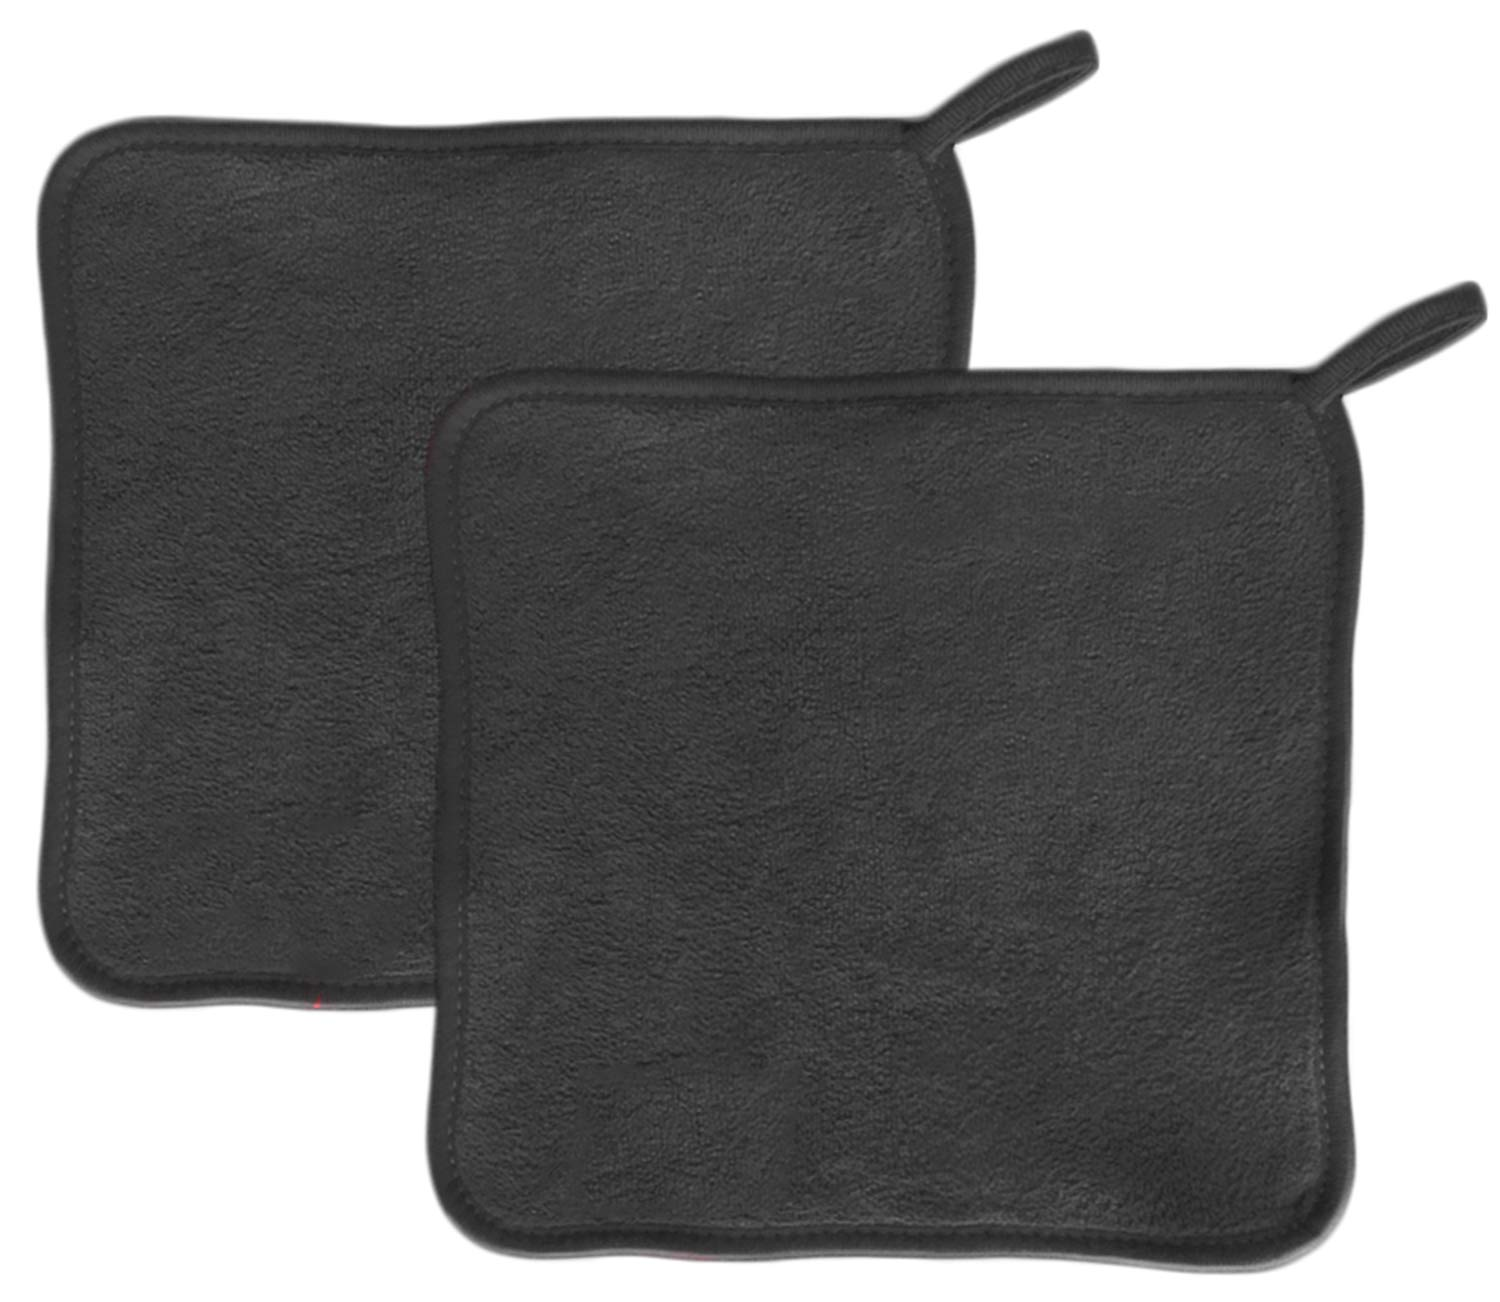 Makeup Remover Cloth (2 pack black) - Chemical Free Cleansing Towel - Wipes Face